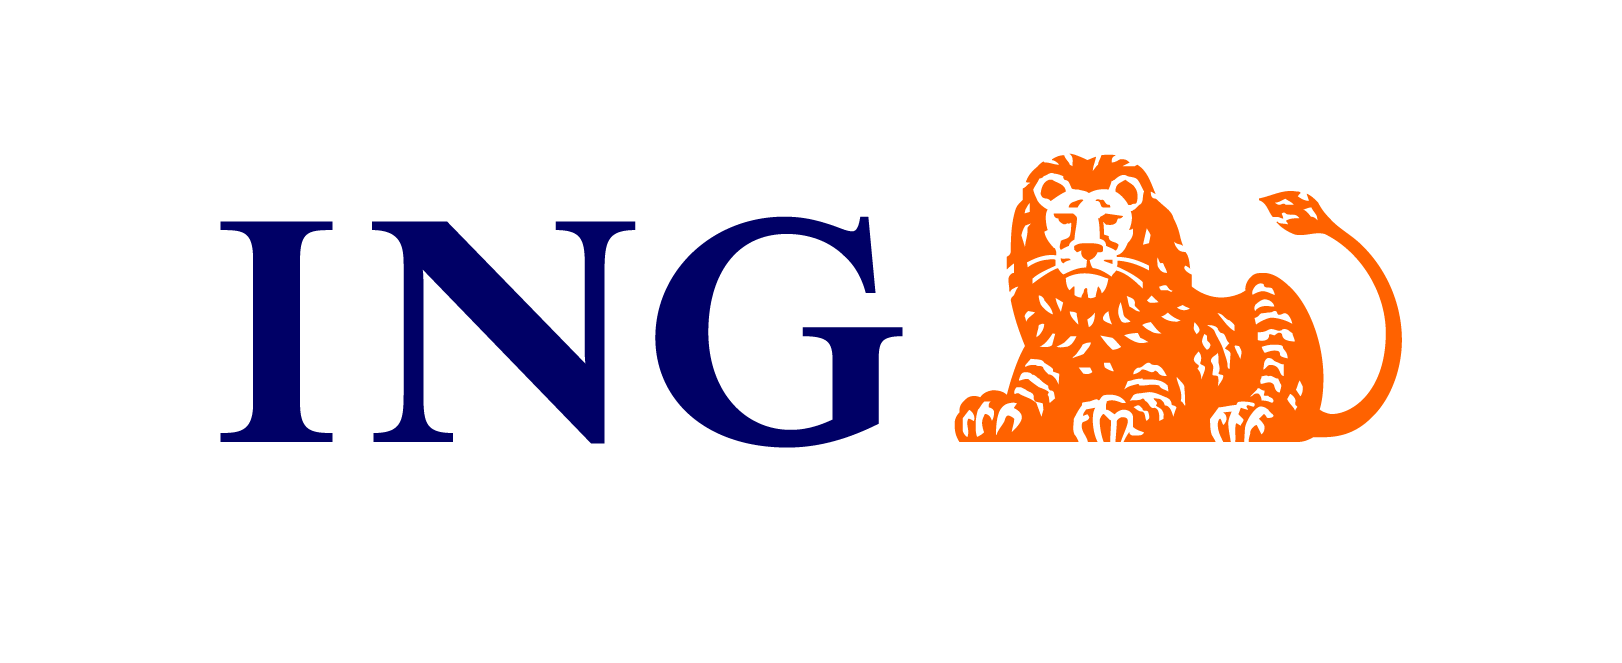 #009 | ING Real Estate Finance